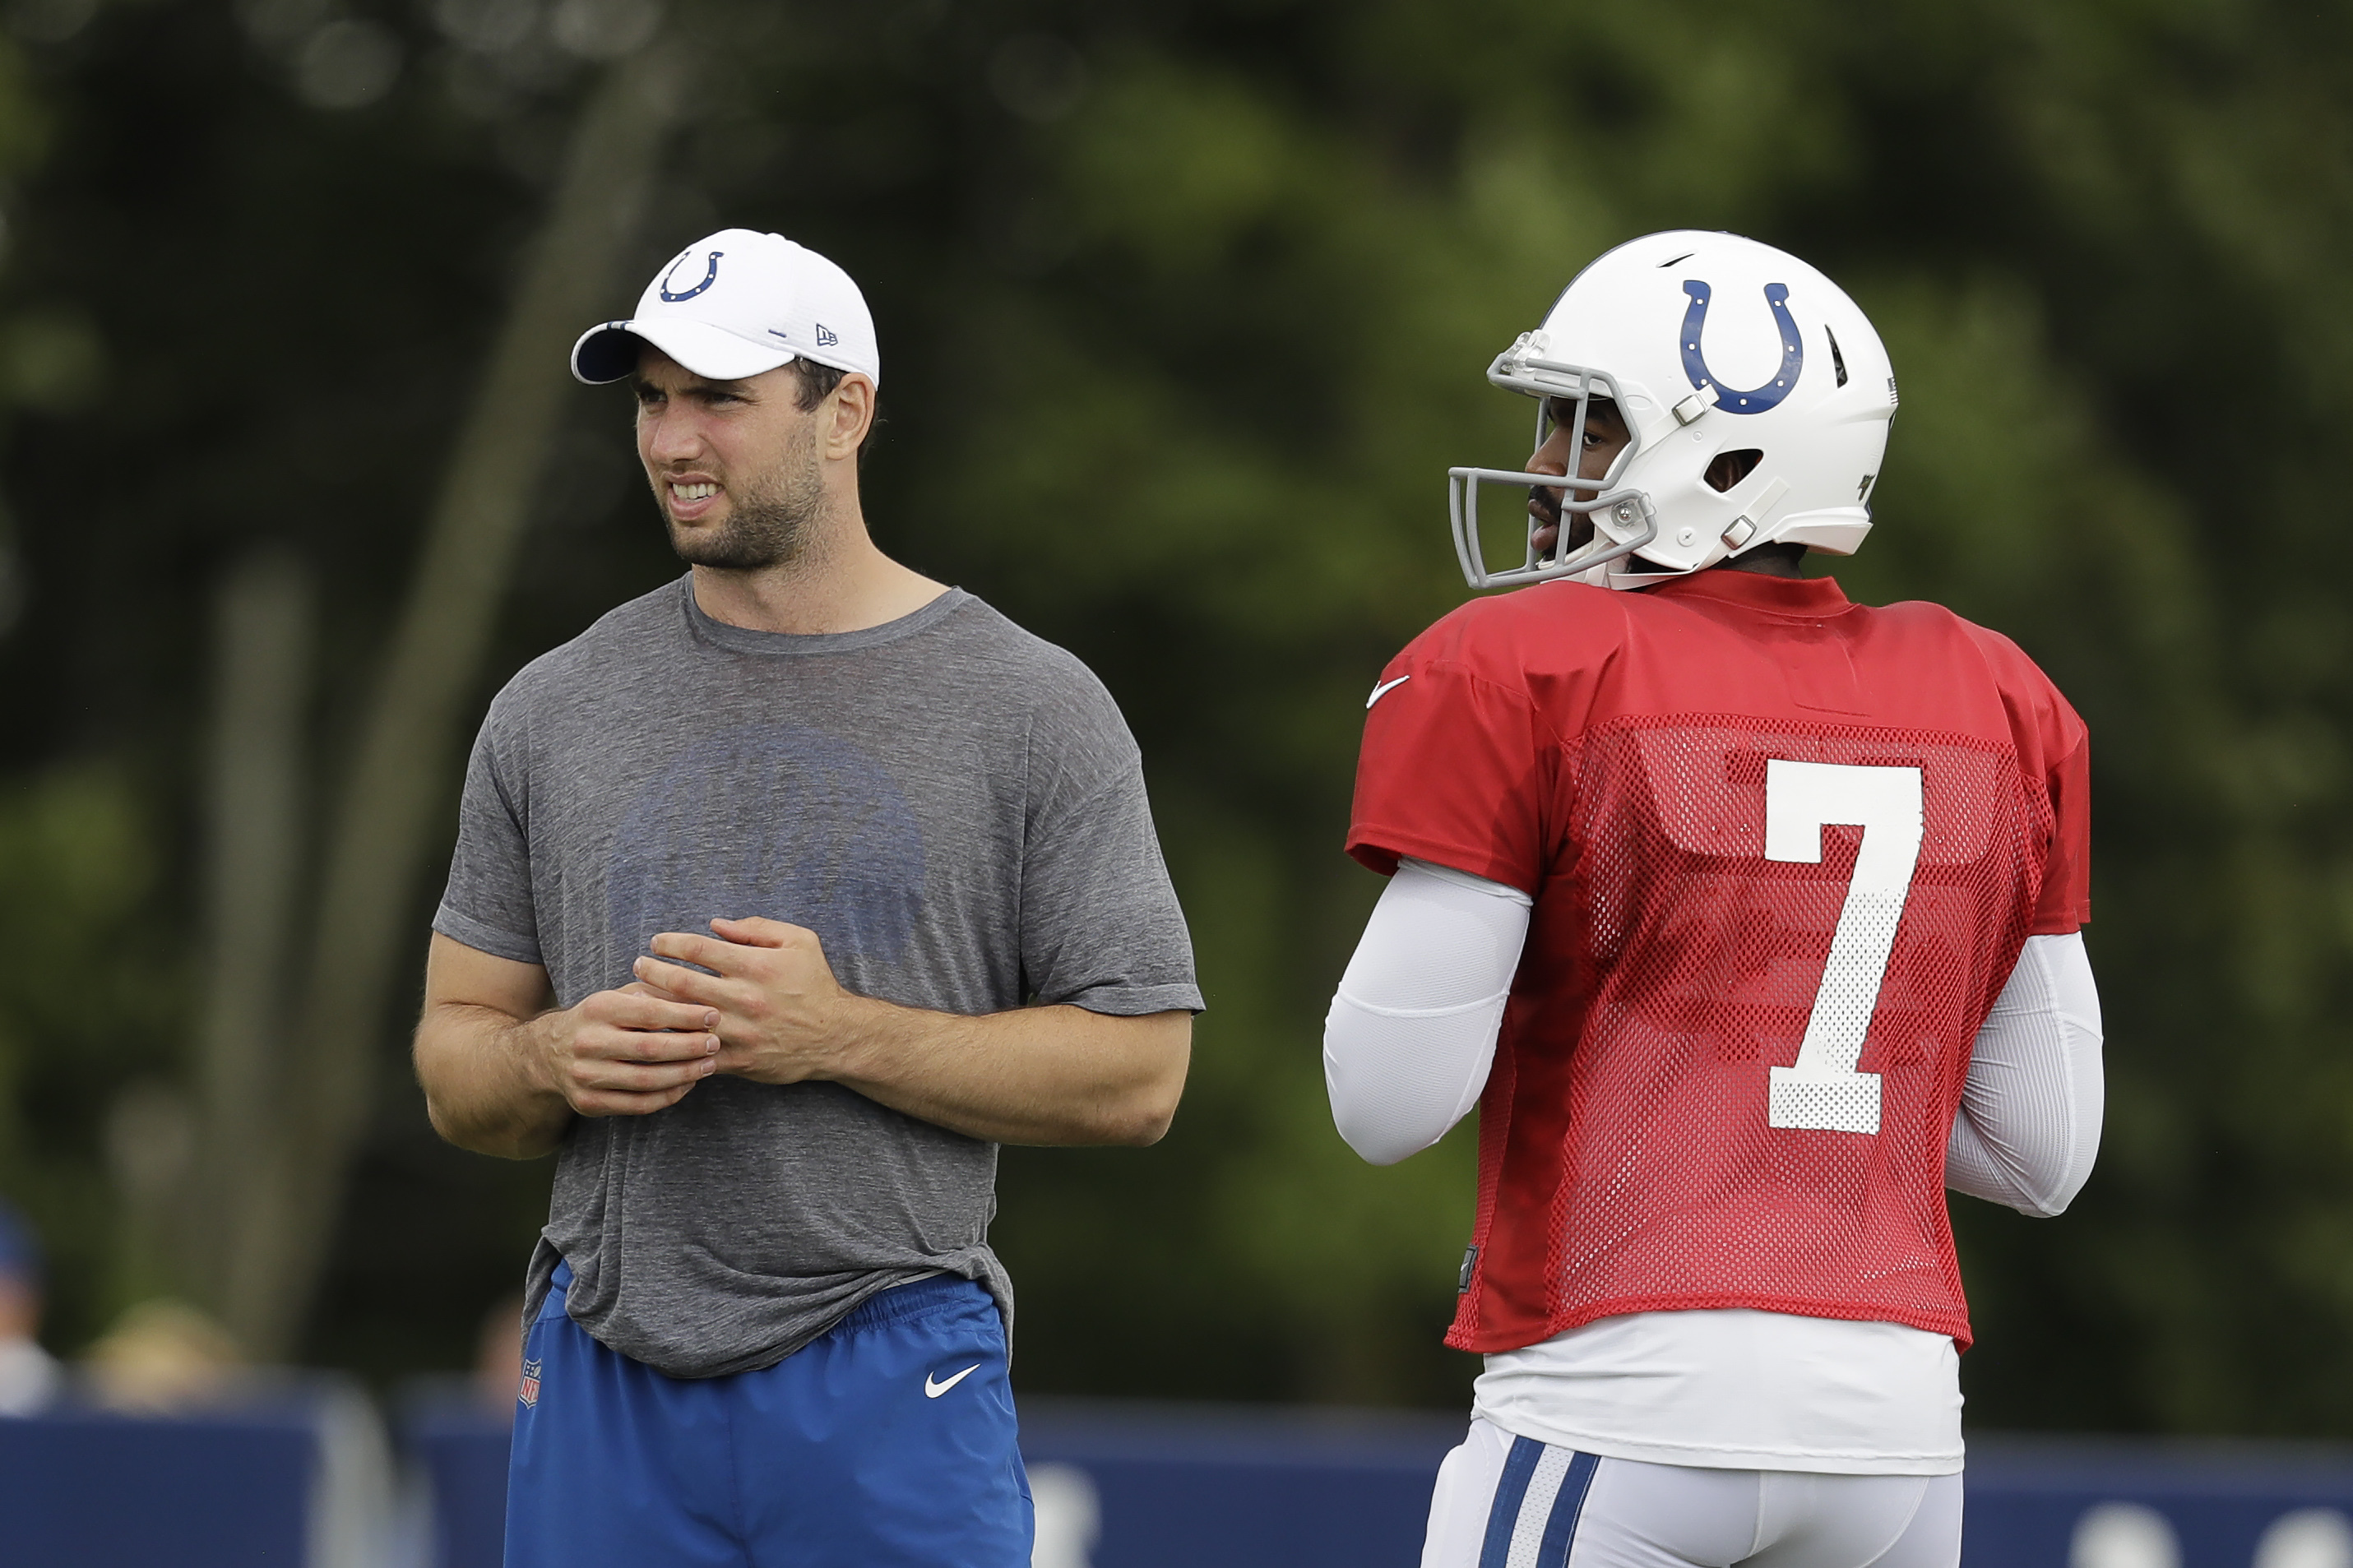 With two weeks left in NFL training camps, several teams still unsettled at quarterback